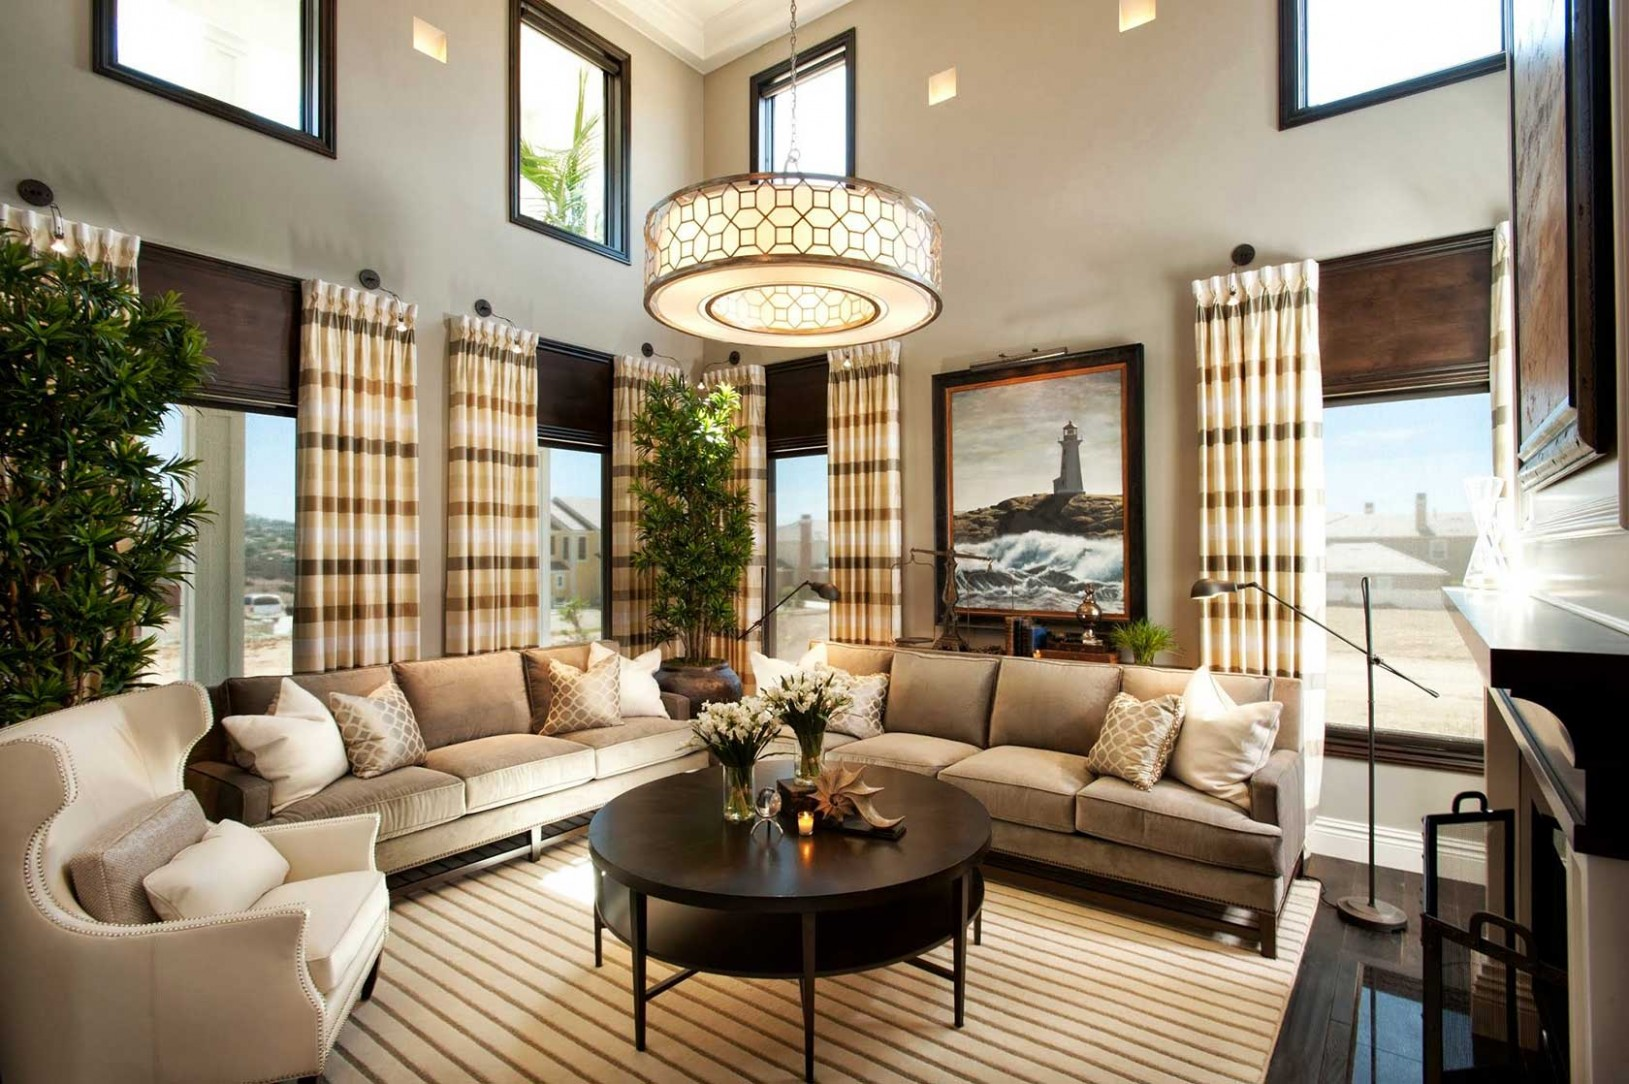 11 Home Design Trends To Watch In 11  My Decorative - Apartment Design Trends 2021